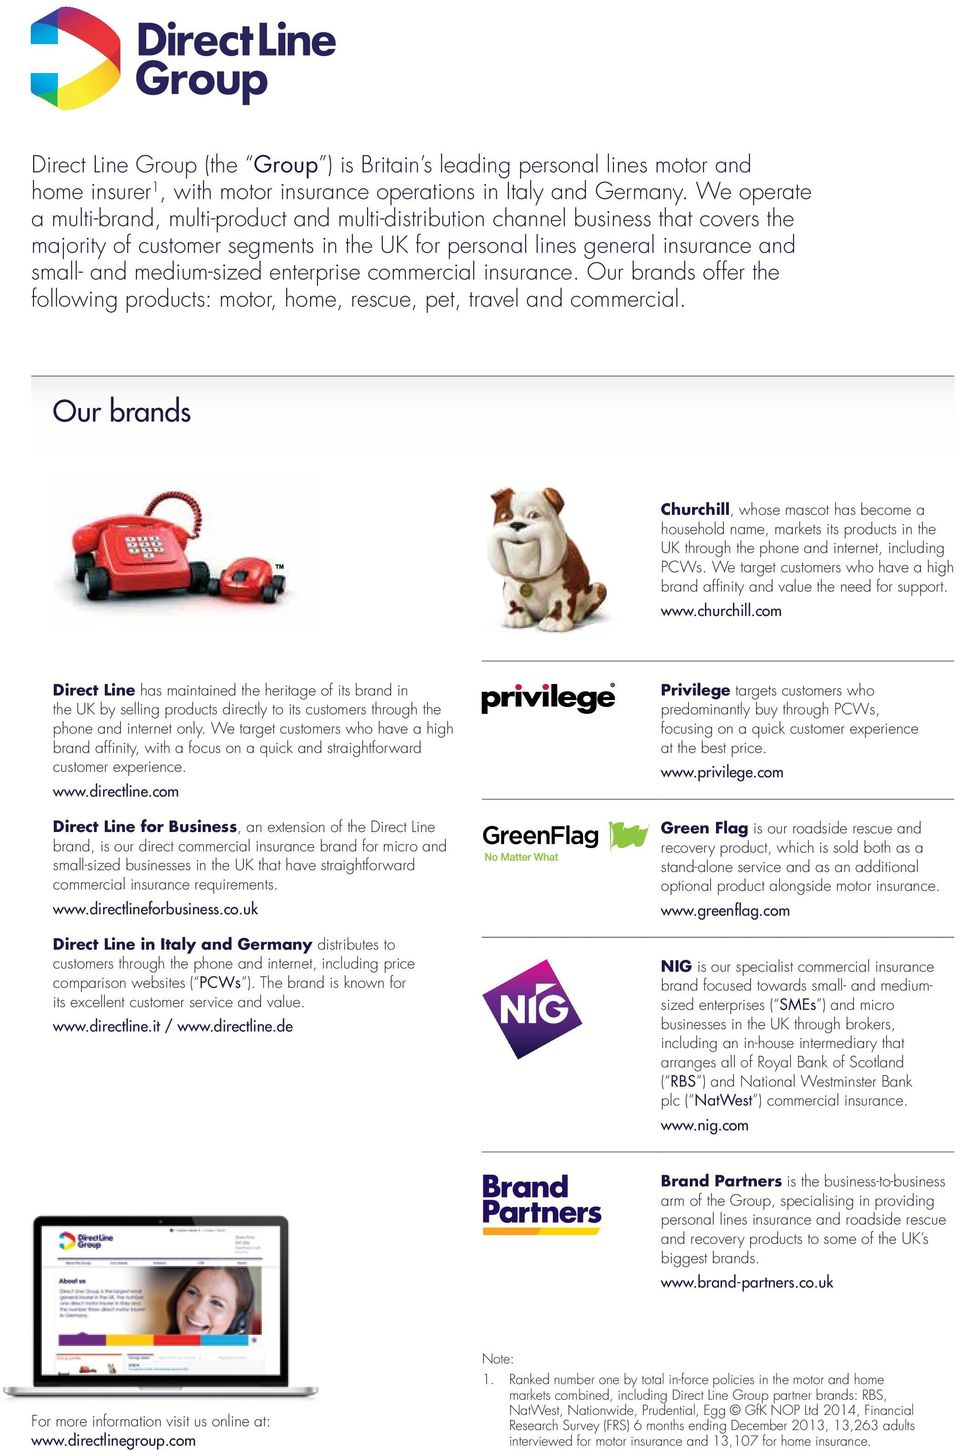 medium-sized enterprise commercial insurance. Our brands offer the following products: motor, home, rescue, pet, travel and commercial.